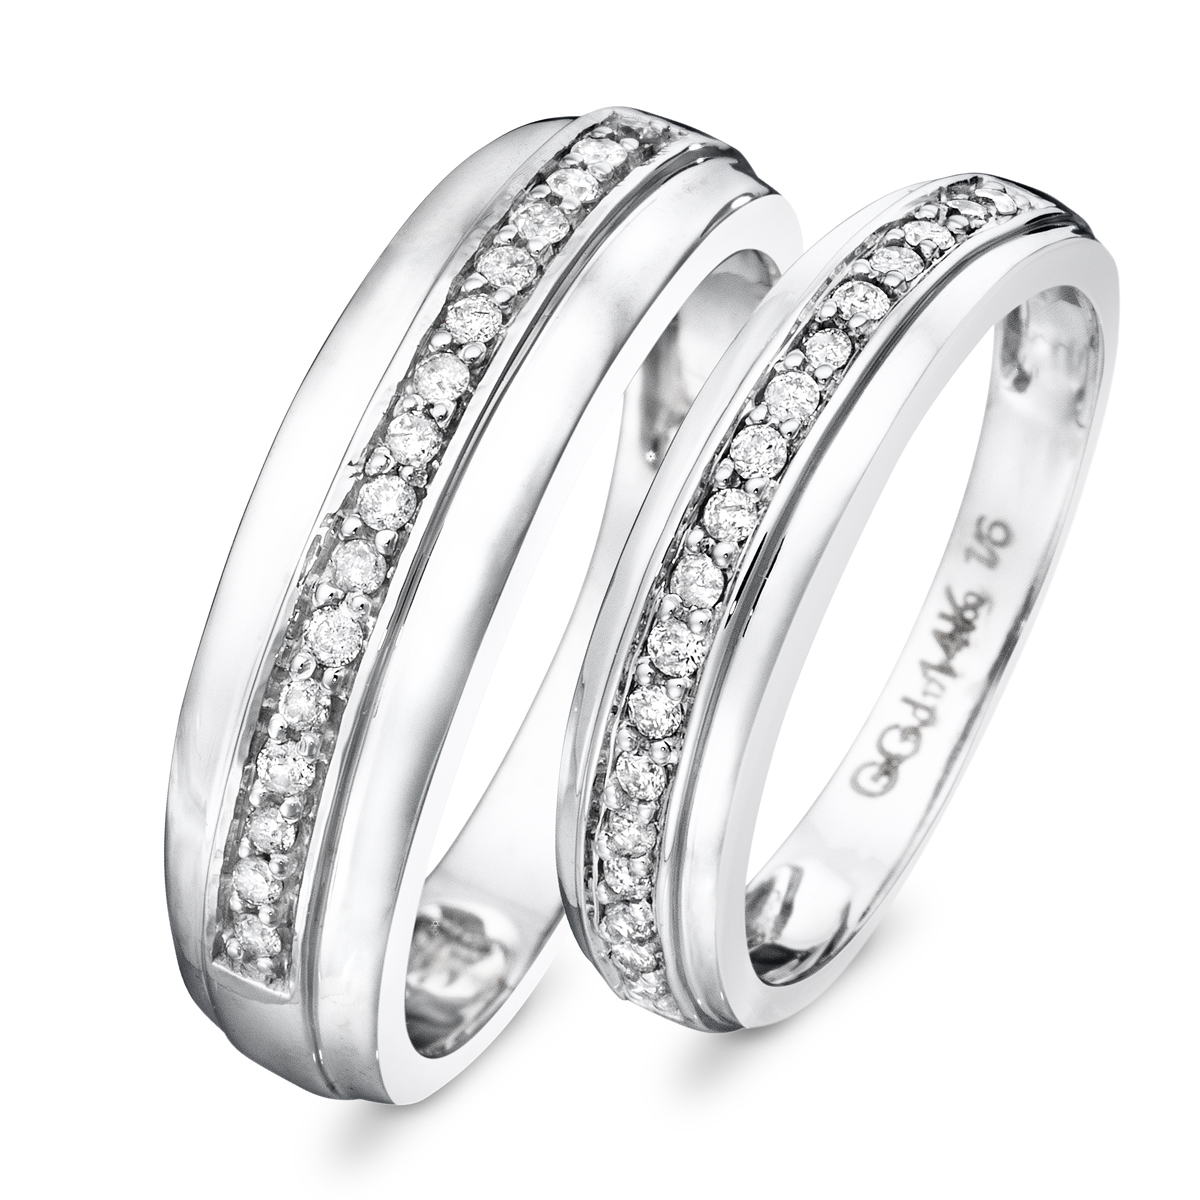 1/3 CT. T.W. Diamond His And Hers Wedding Rings 10K White Gold